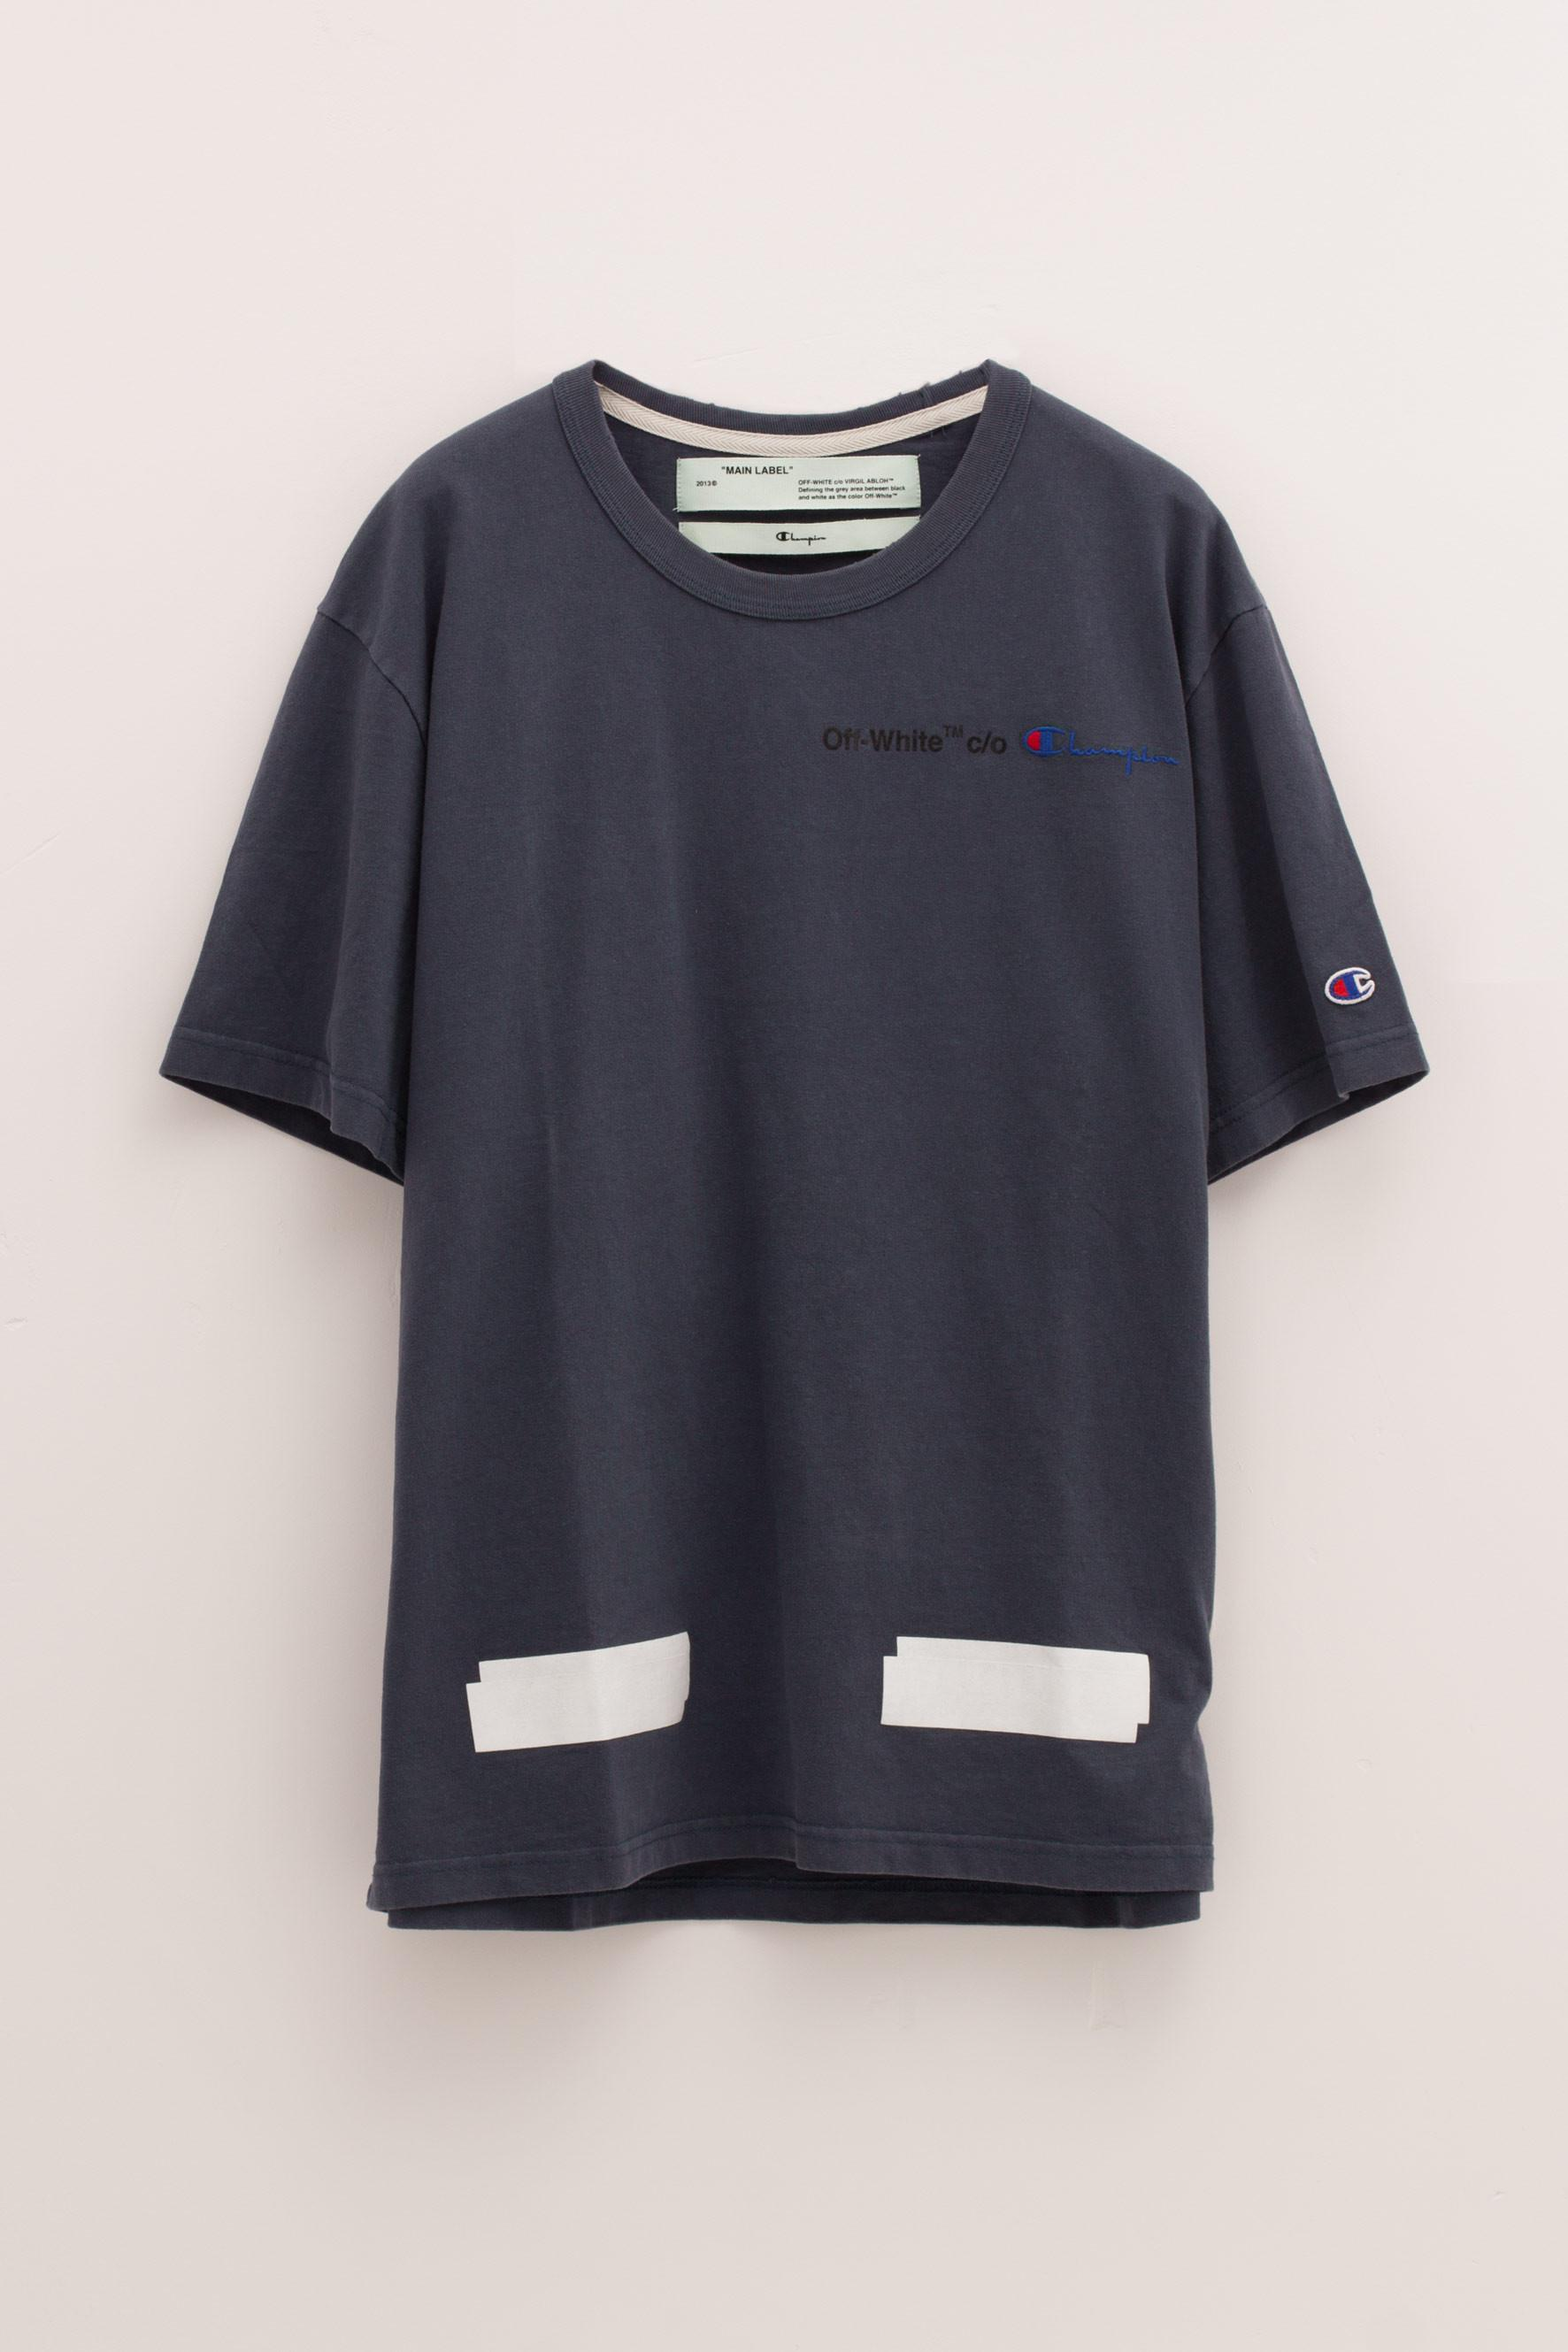 637ed136 Off-White c/o Virgil Abloh Champion Tee in Blue - Lyst